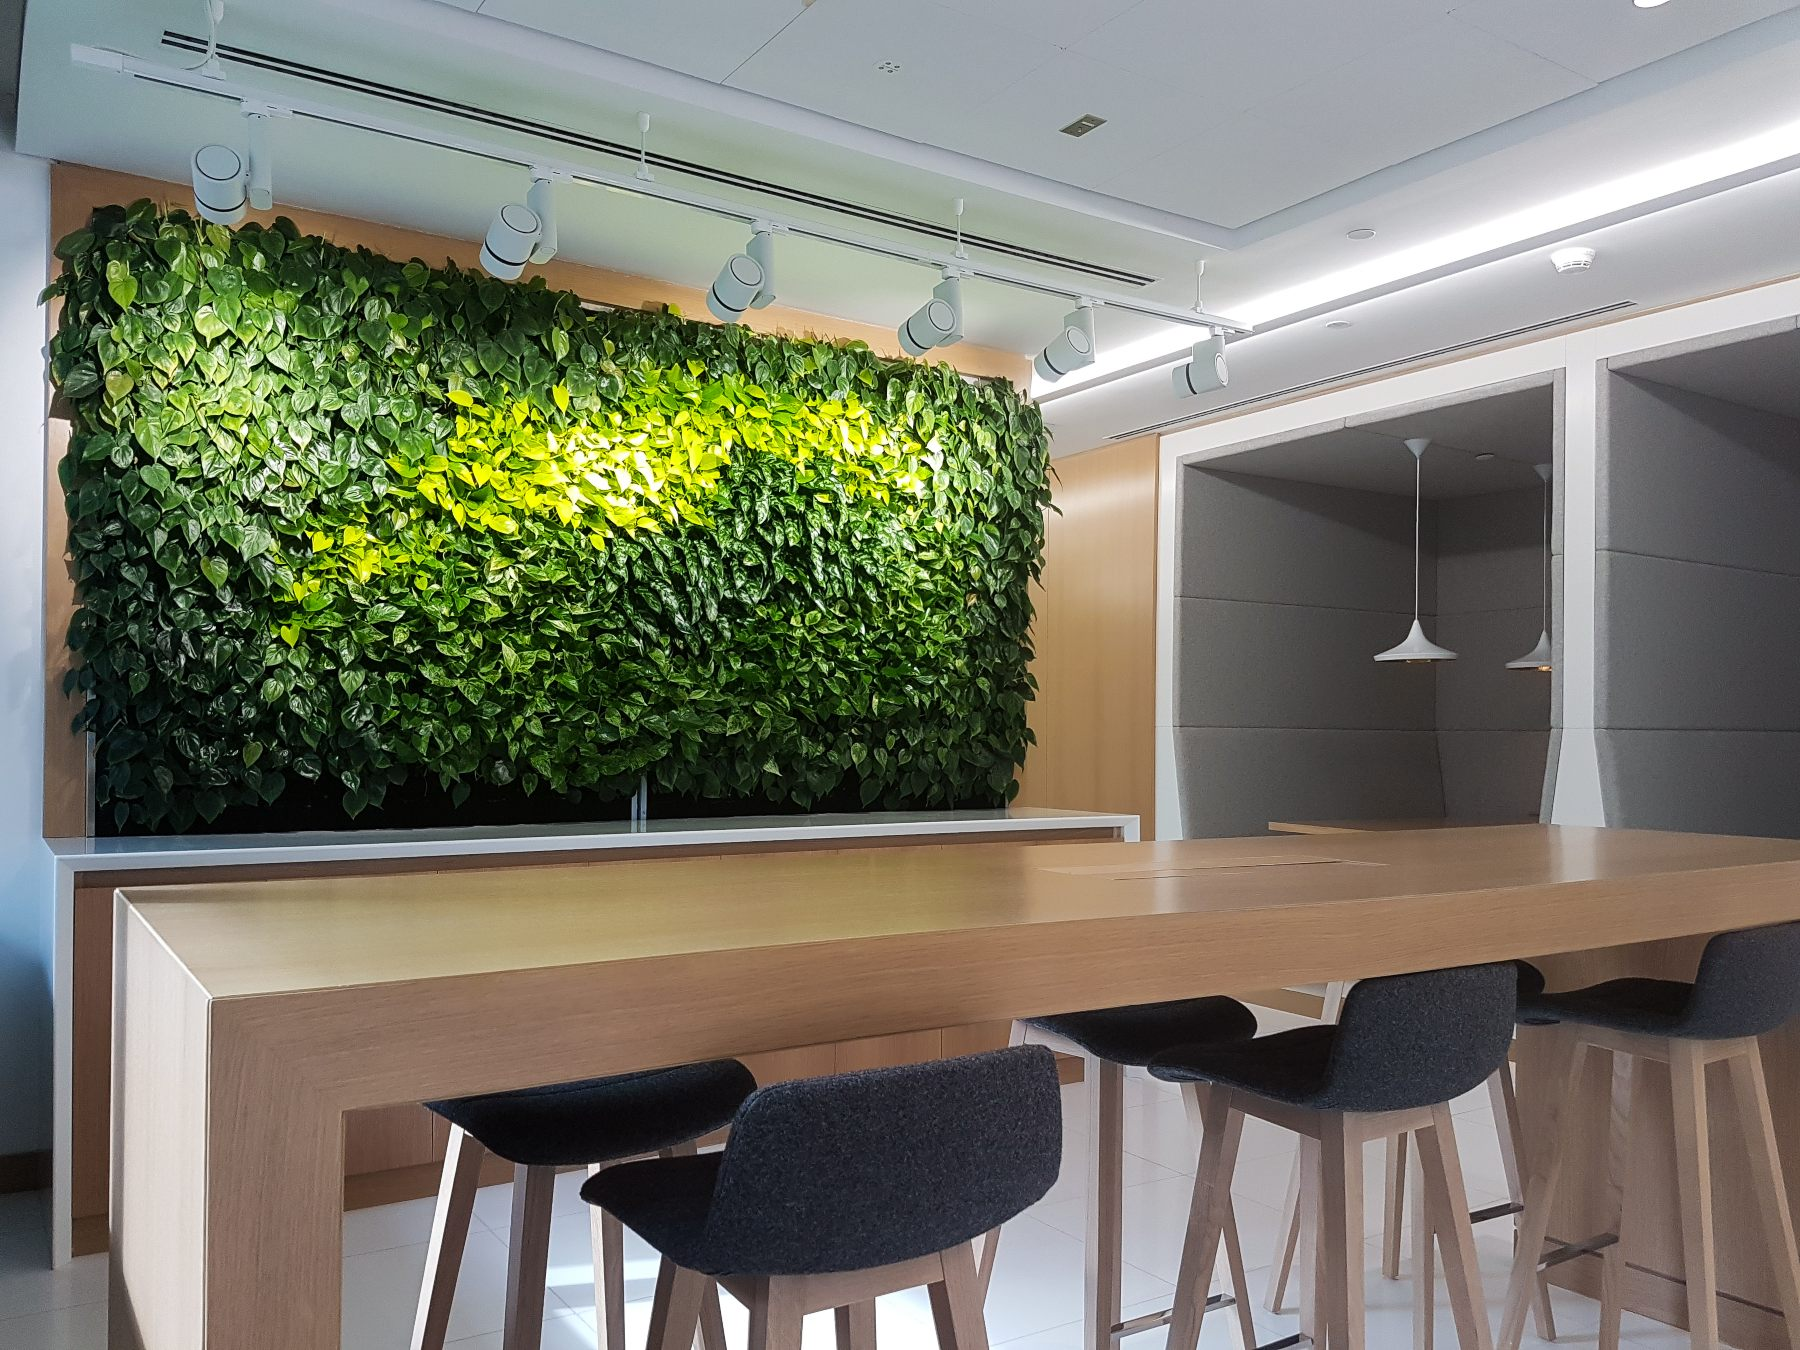 Green Wall from Planters